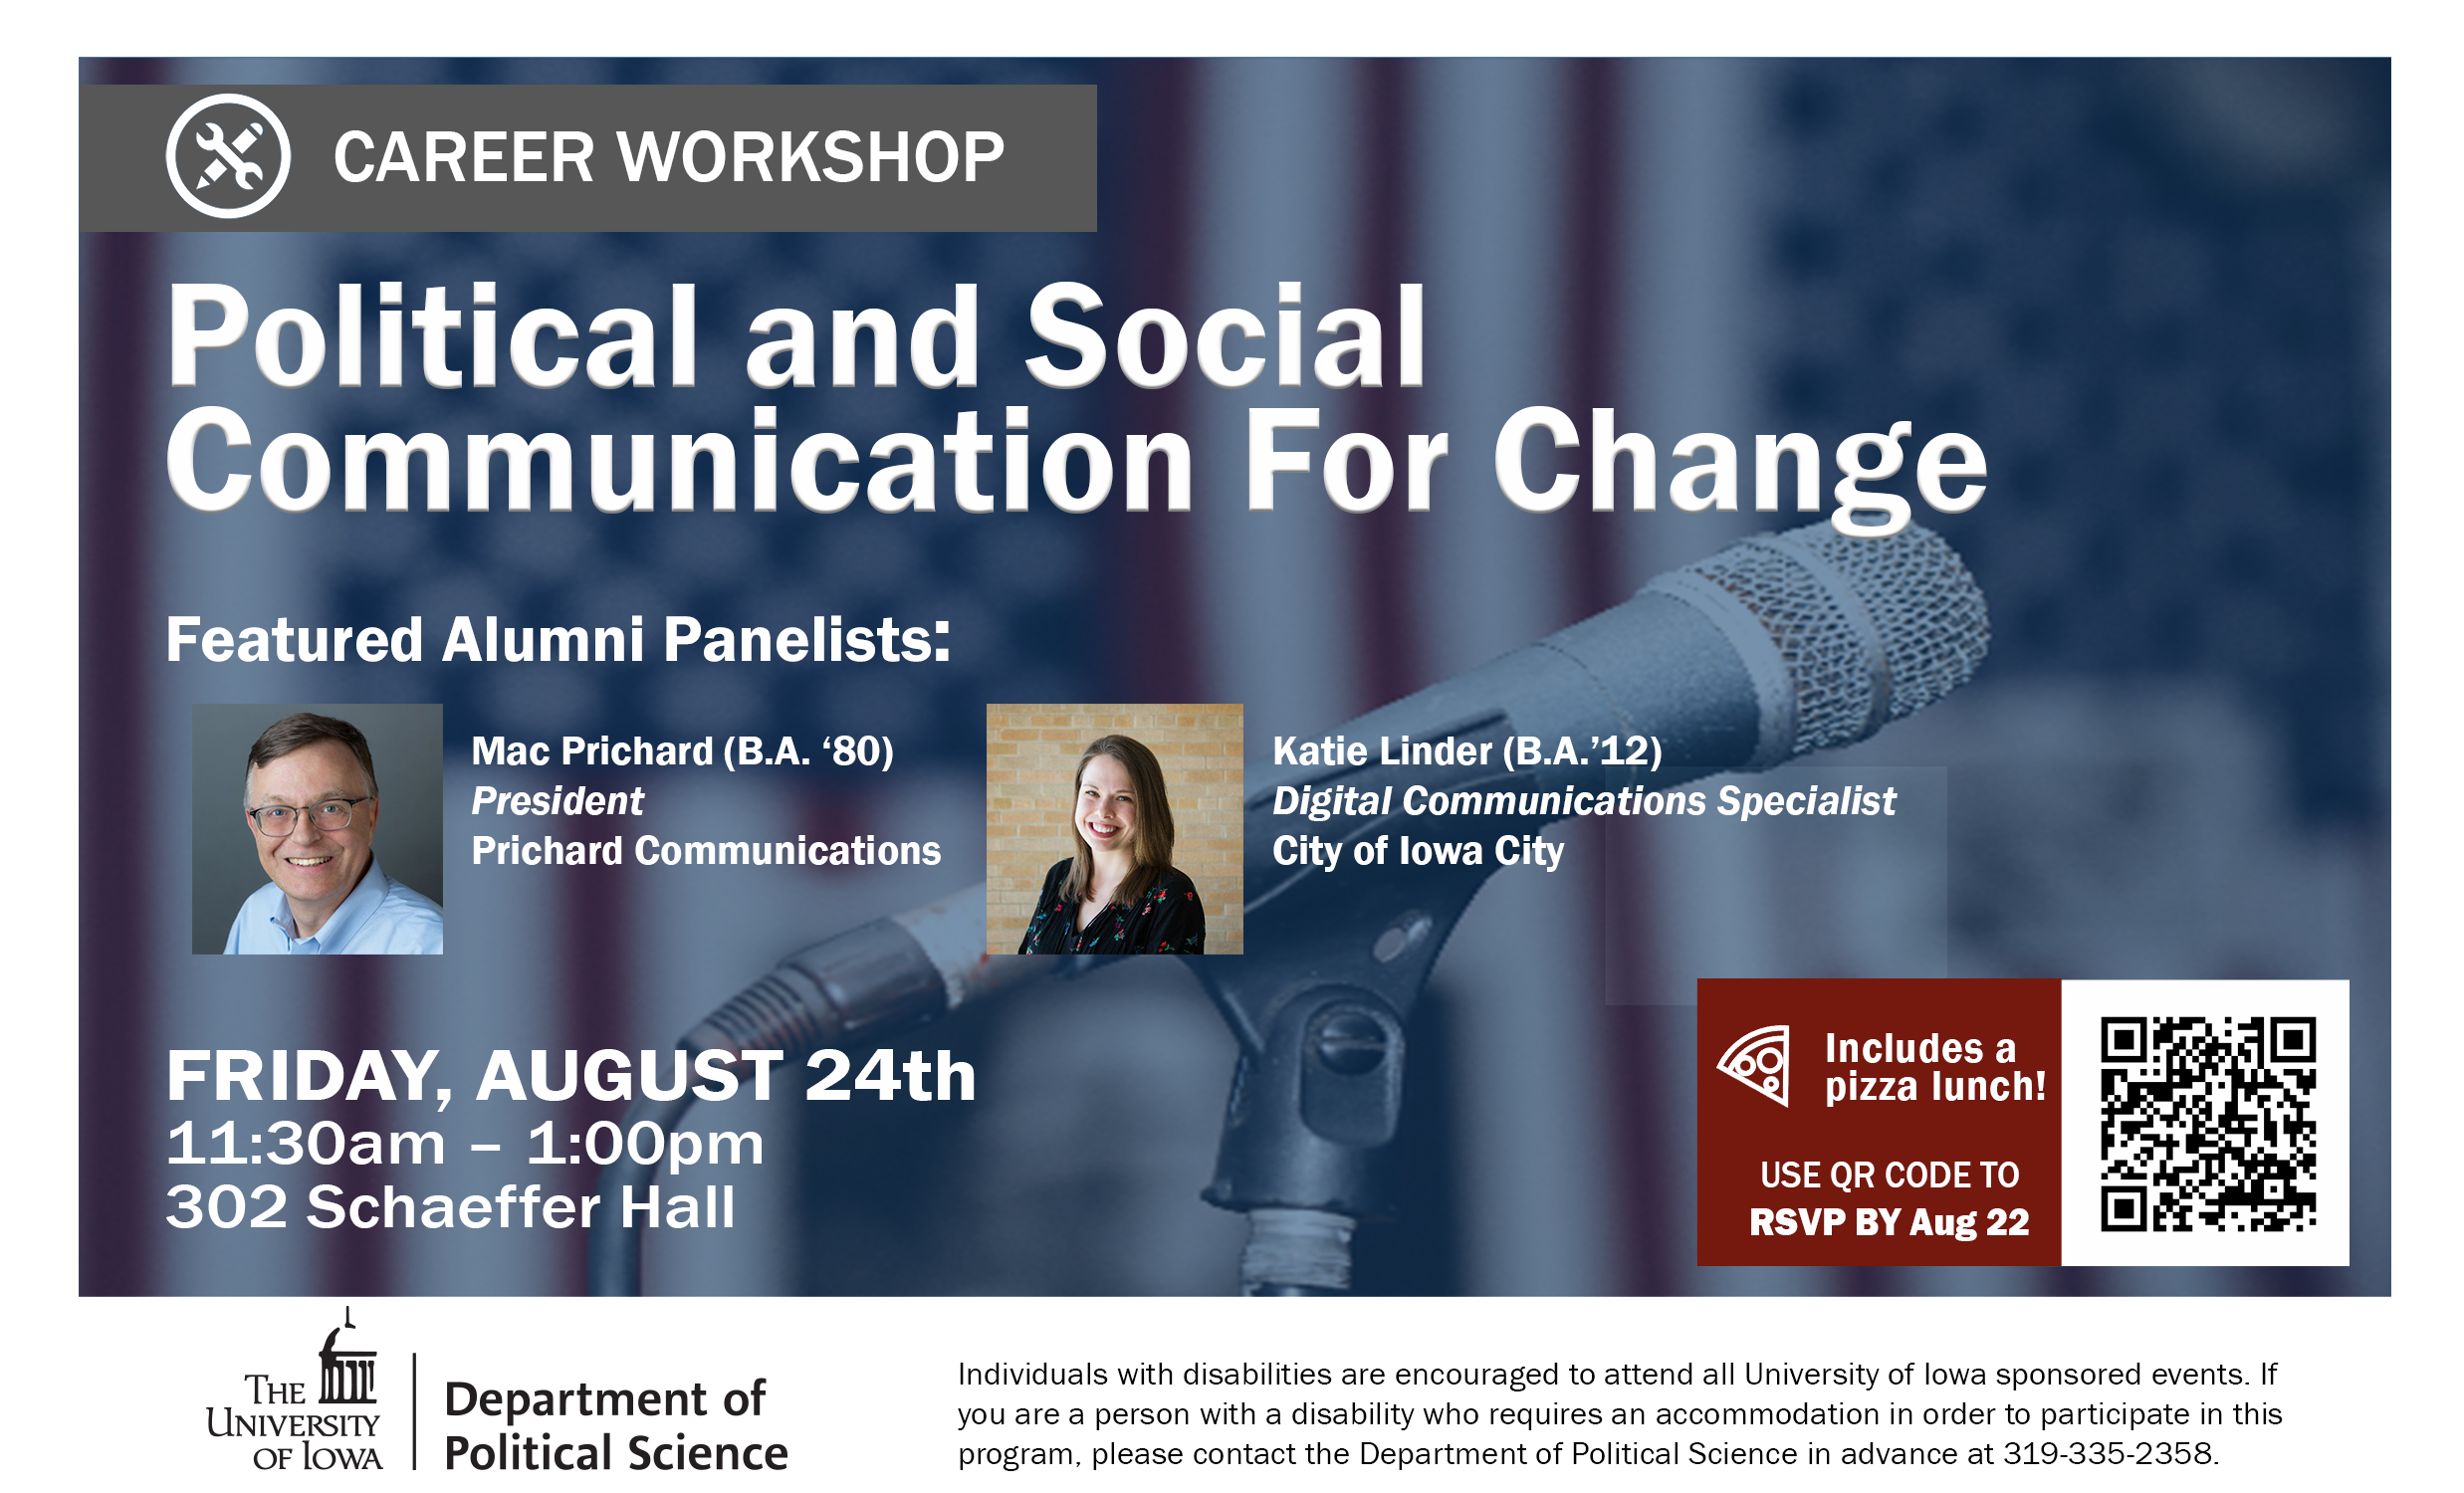 Political and Social Communication for Change